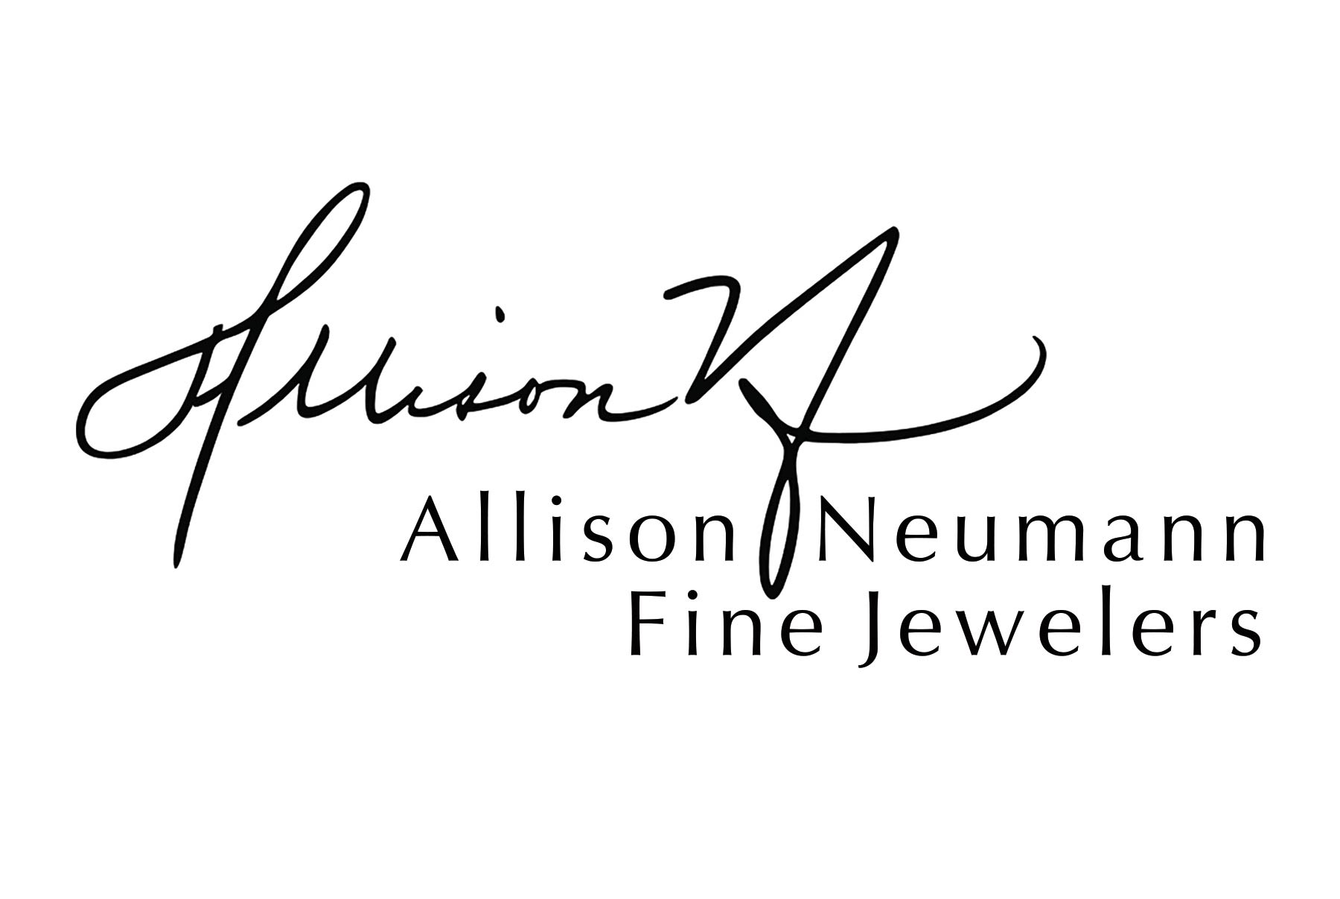 Allison Neumann Fine Jewelers